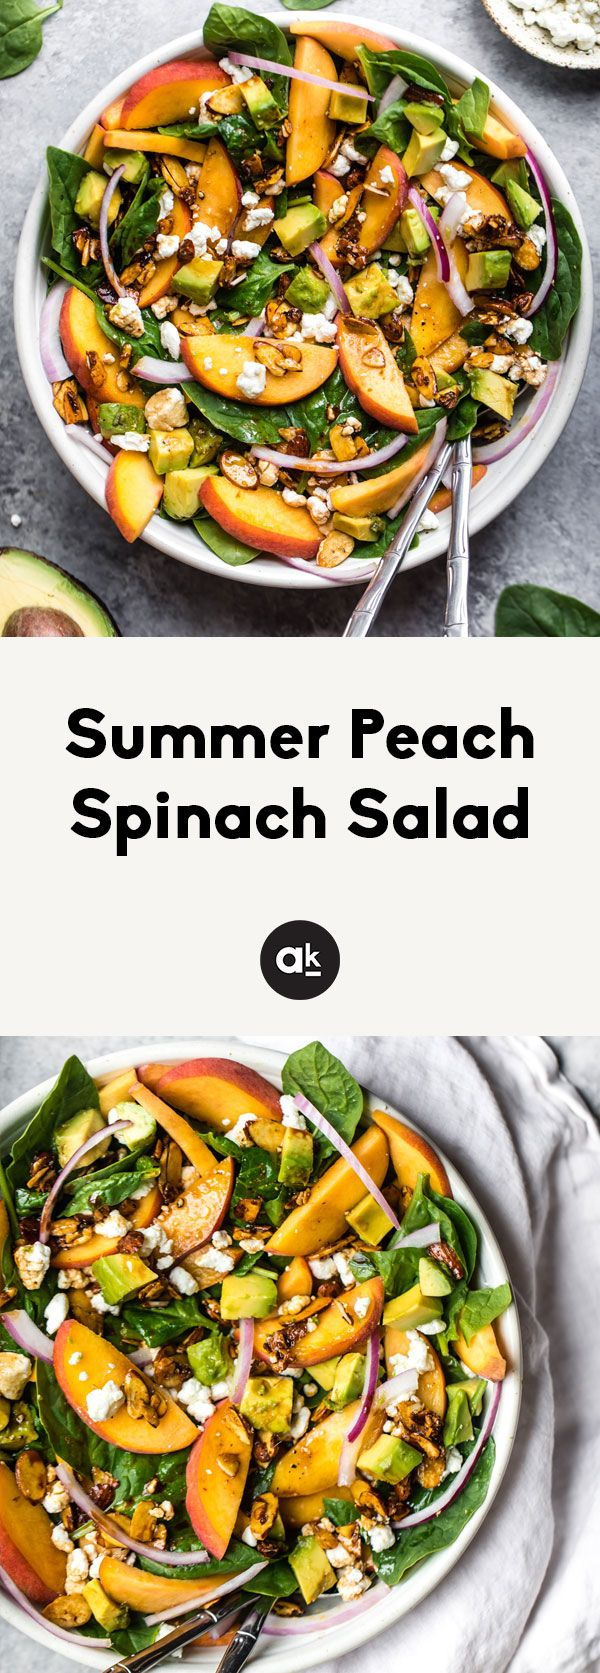 72ff8ba953d90e6ccddd31a2494631b2 One of my favorite go to summer salads is this fresh peach spinach salad with cr...